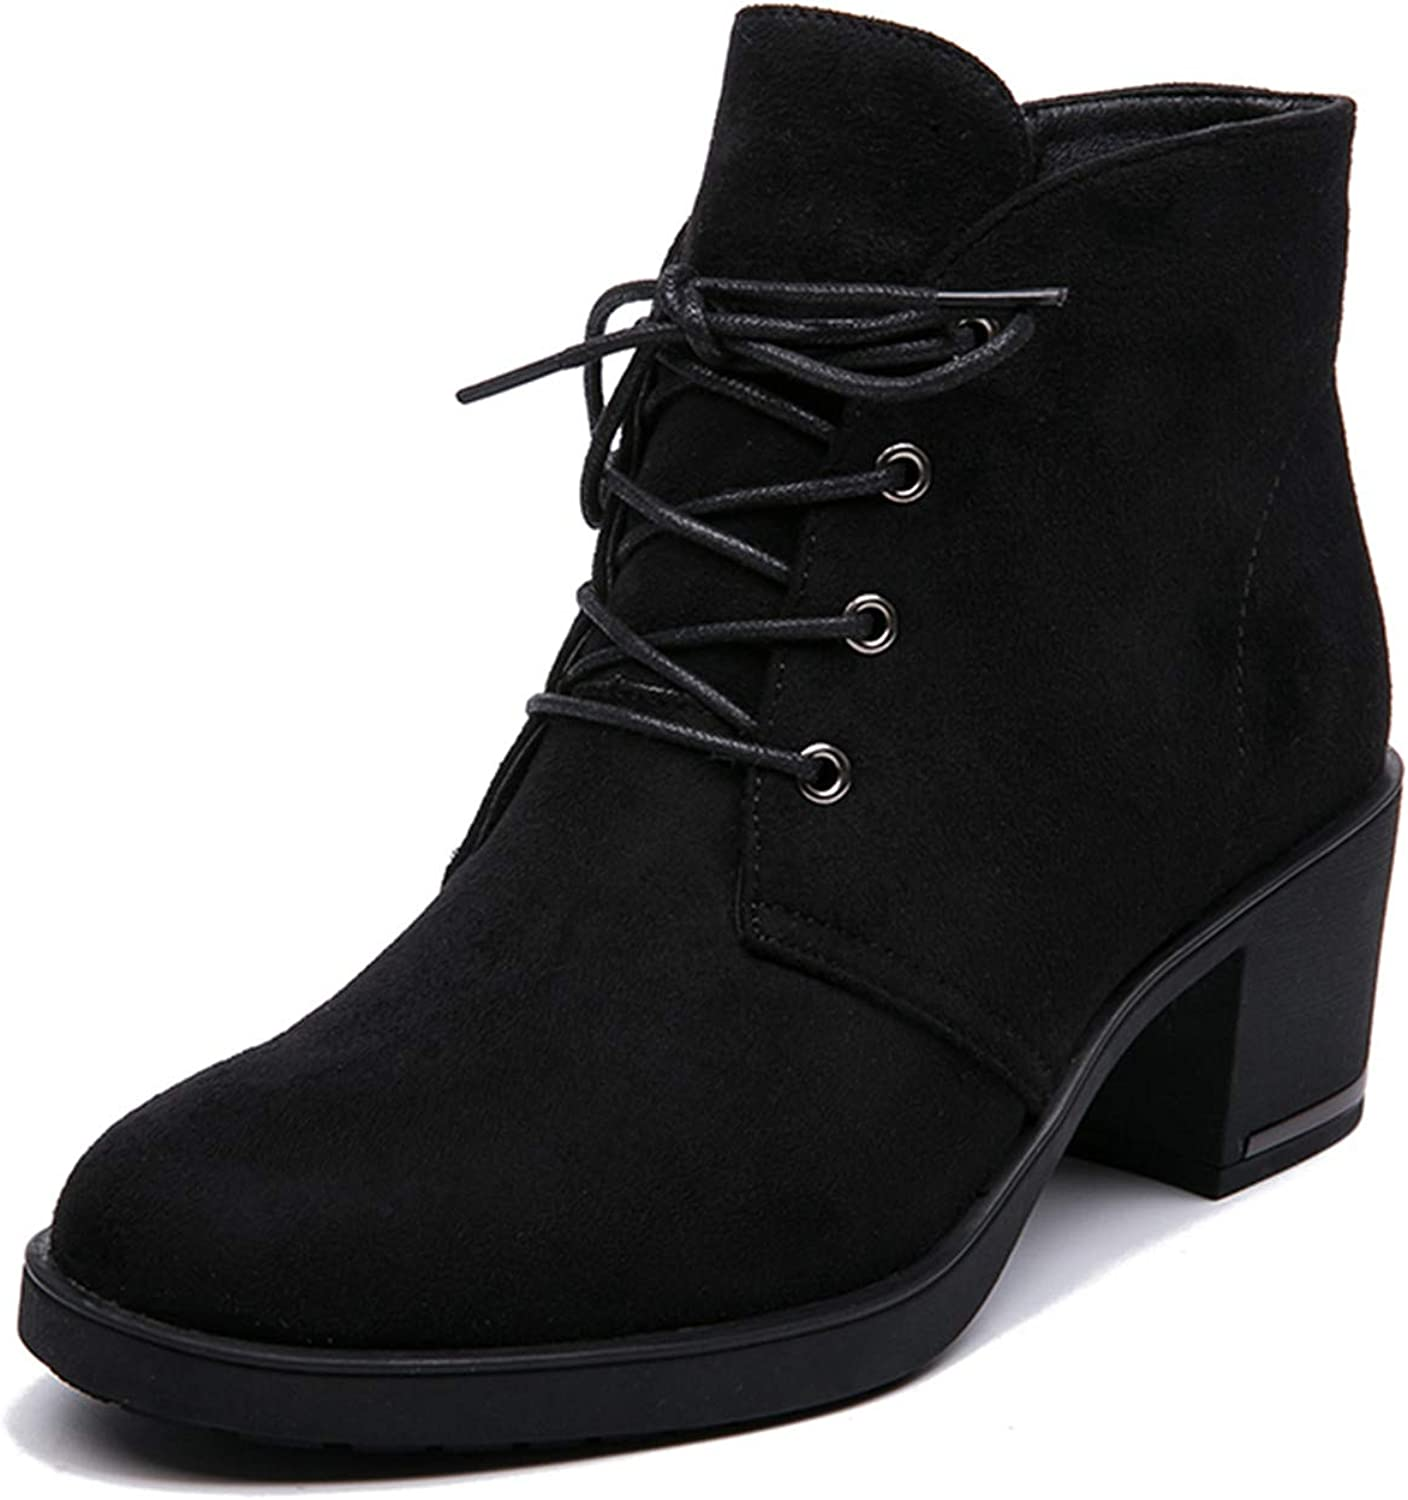 Spring Autumn Women Ankle Boots Suede Leather Short Booties Lace Up Boots Women with Fur shoes